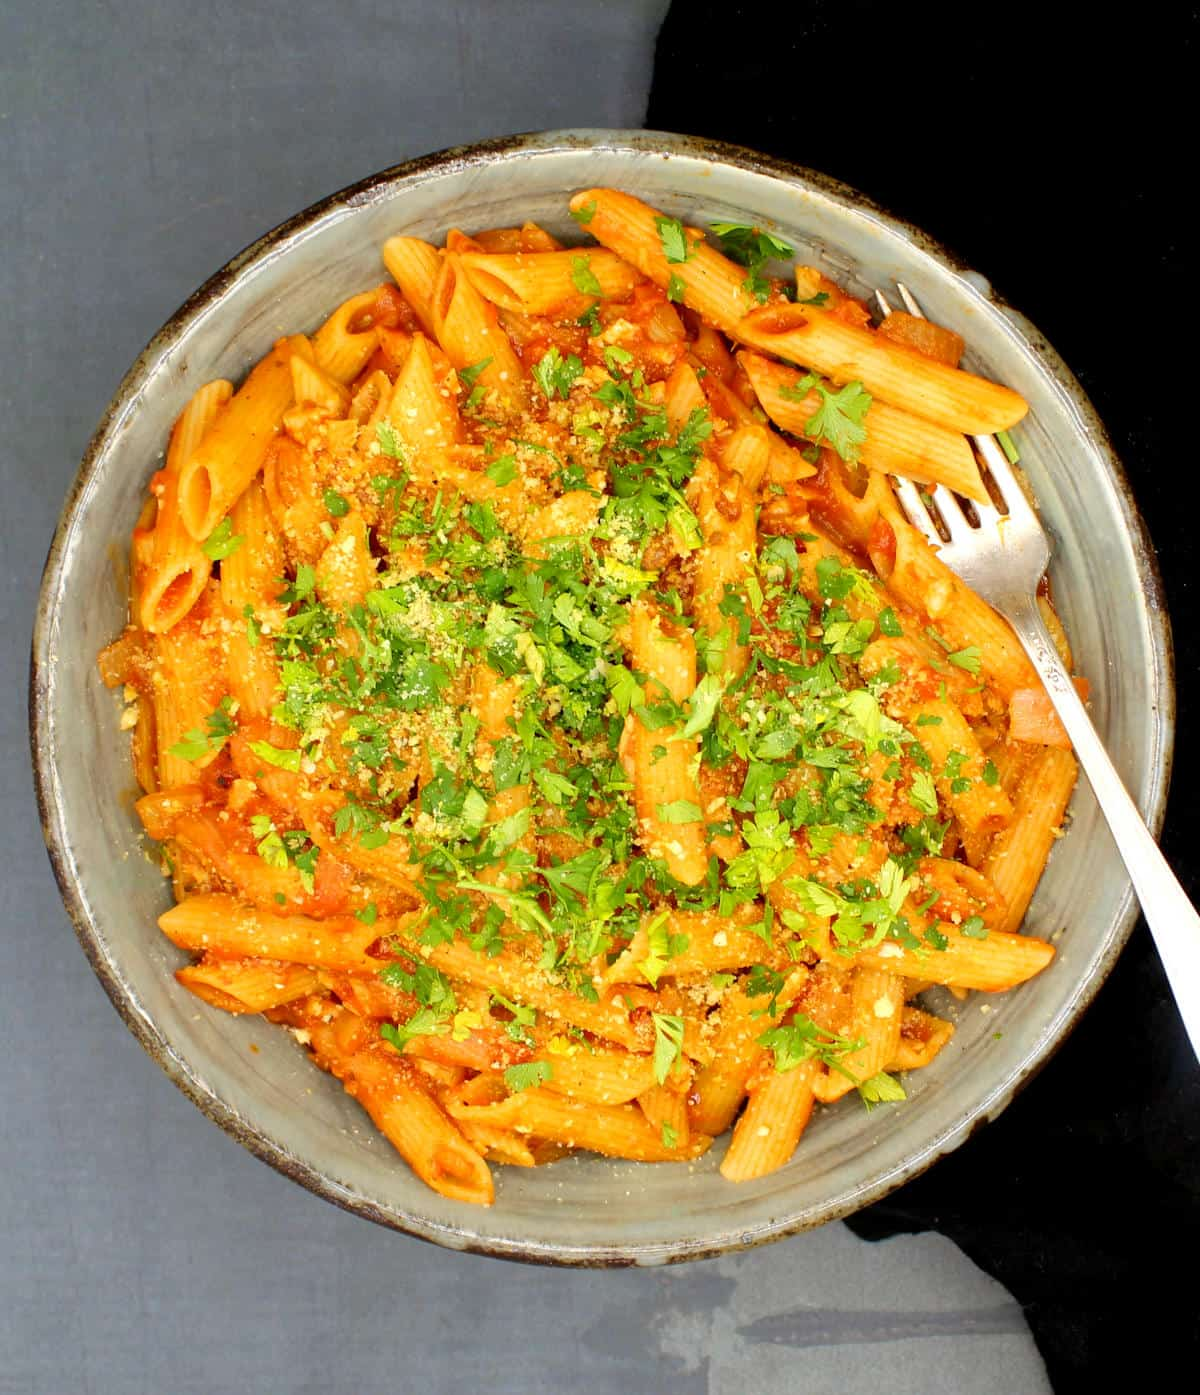 Vegan Pasta Amatriciana in a big bowl with penne pasta, tomato sauce, parsley and cashew parmesan.